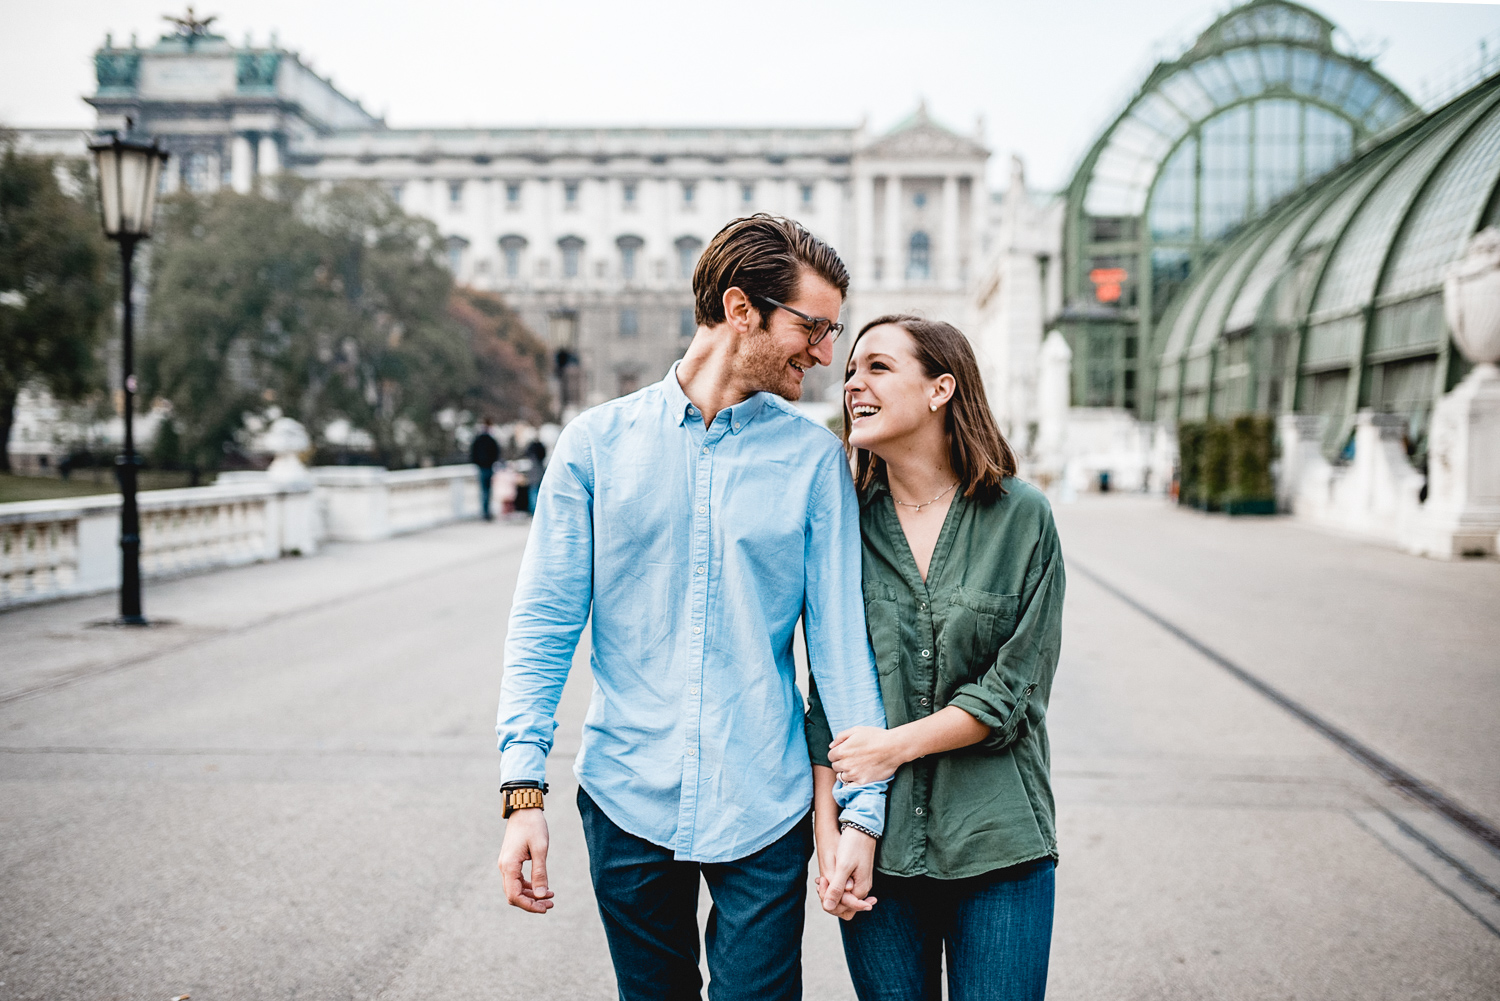 Engagement_Shooting_Vienna_Location-11.jpg